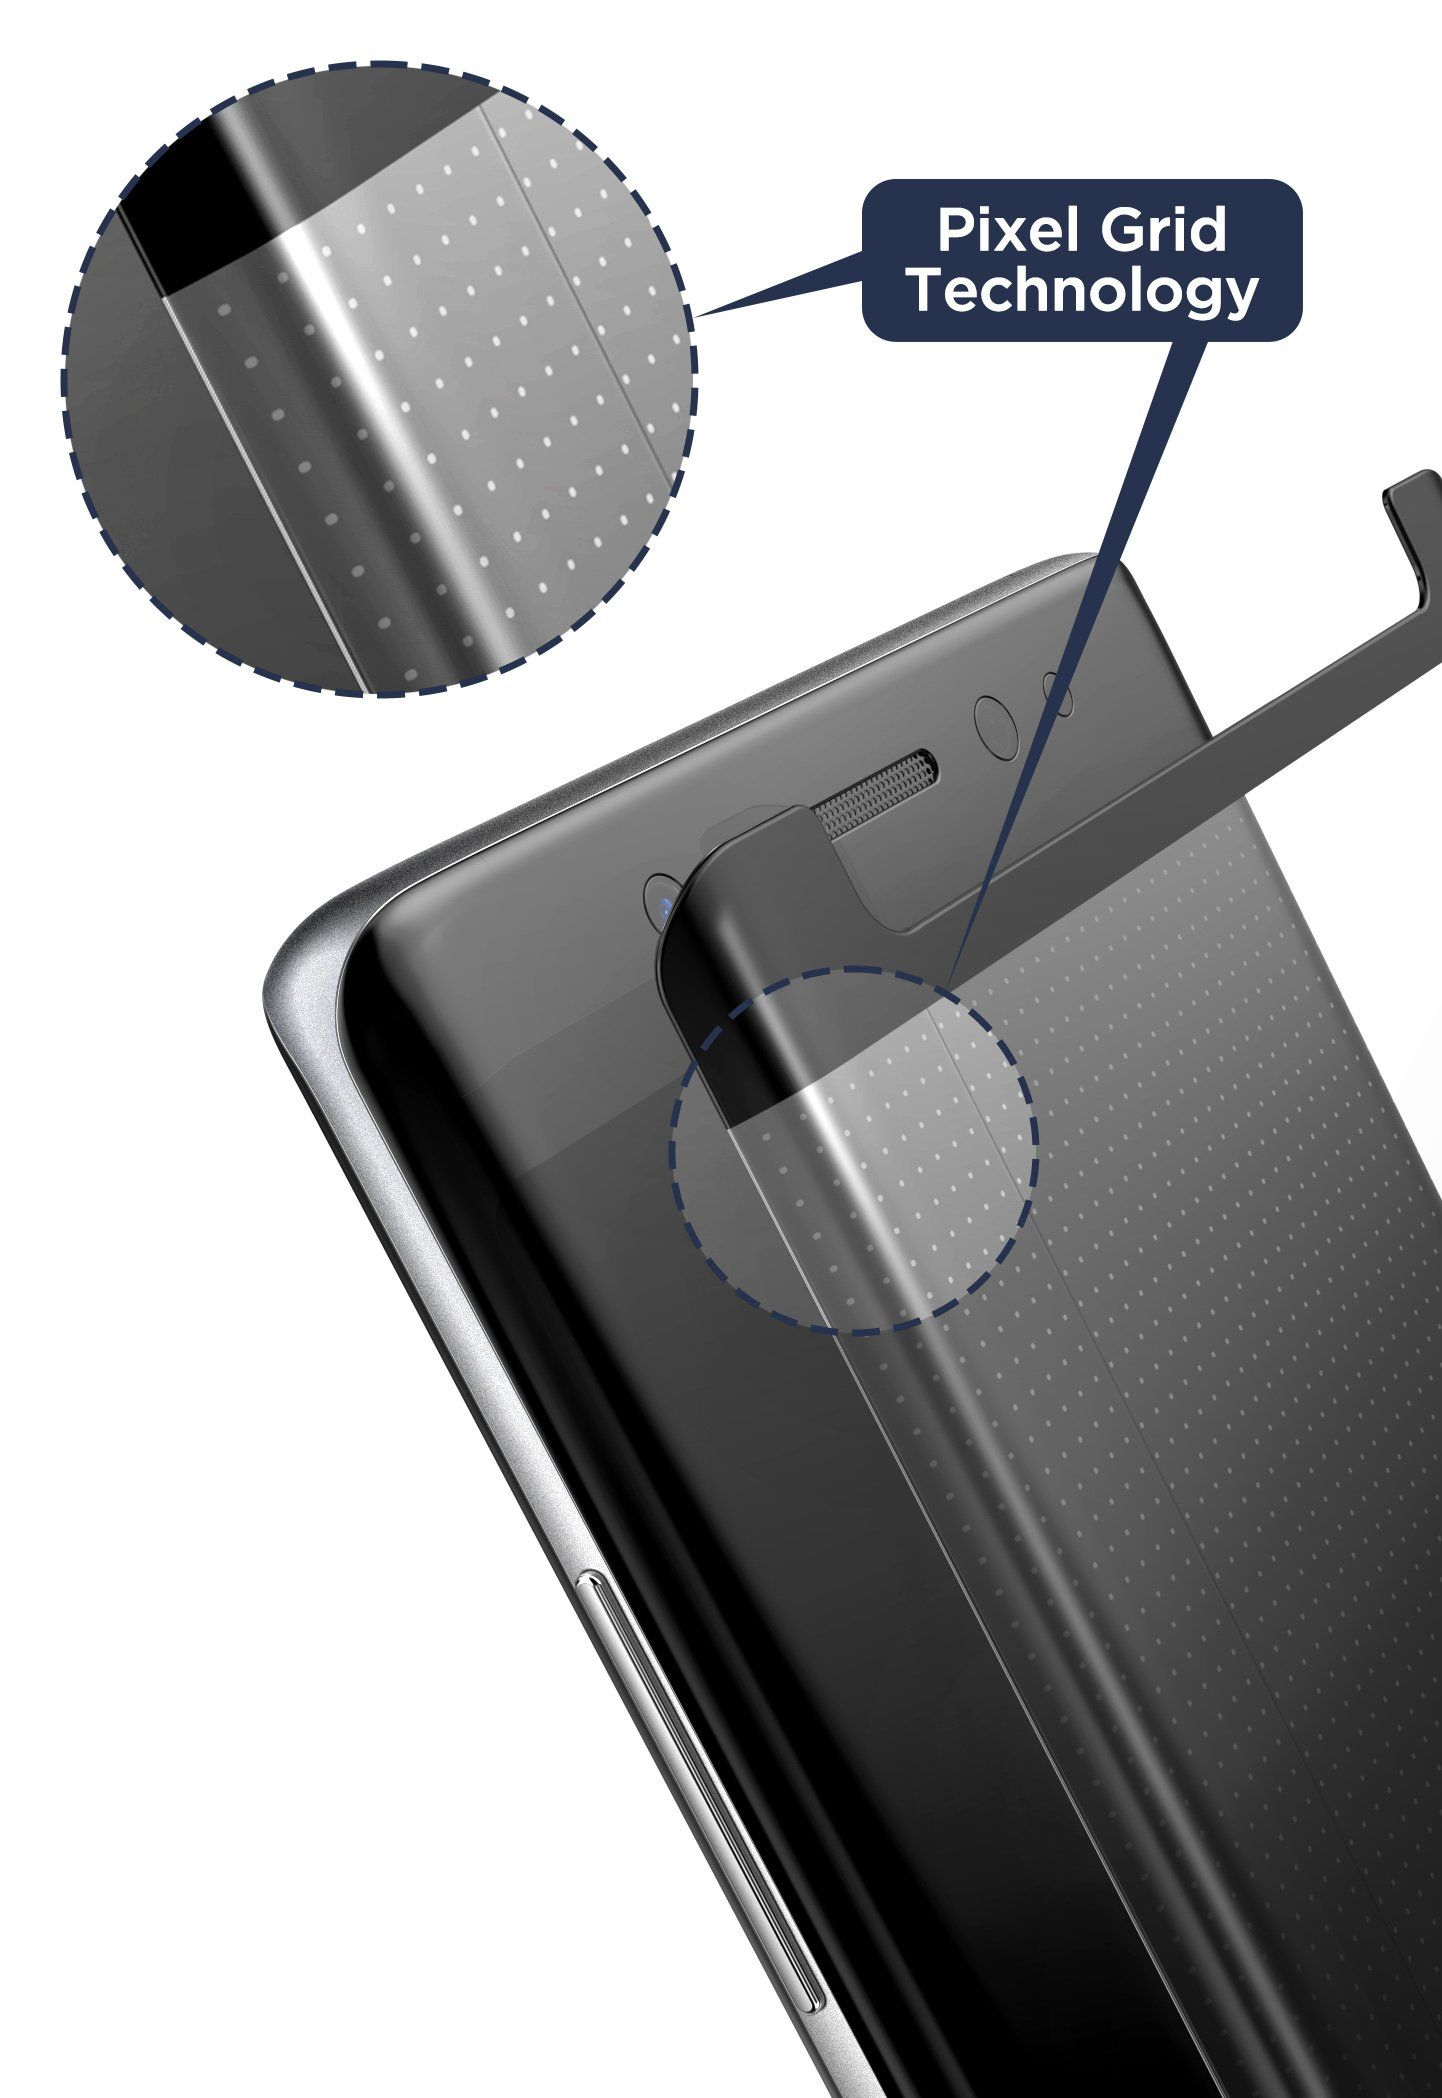 7186ef606a019d3b432536592b7ff395 - Iphone Xs Screen Protector With Applicator